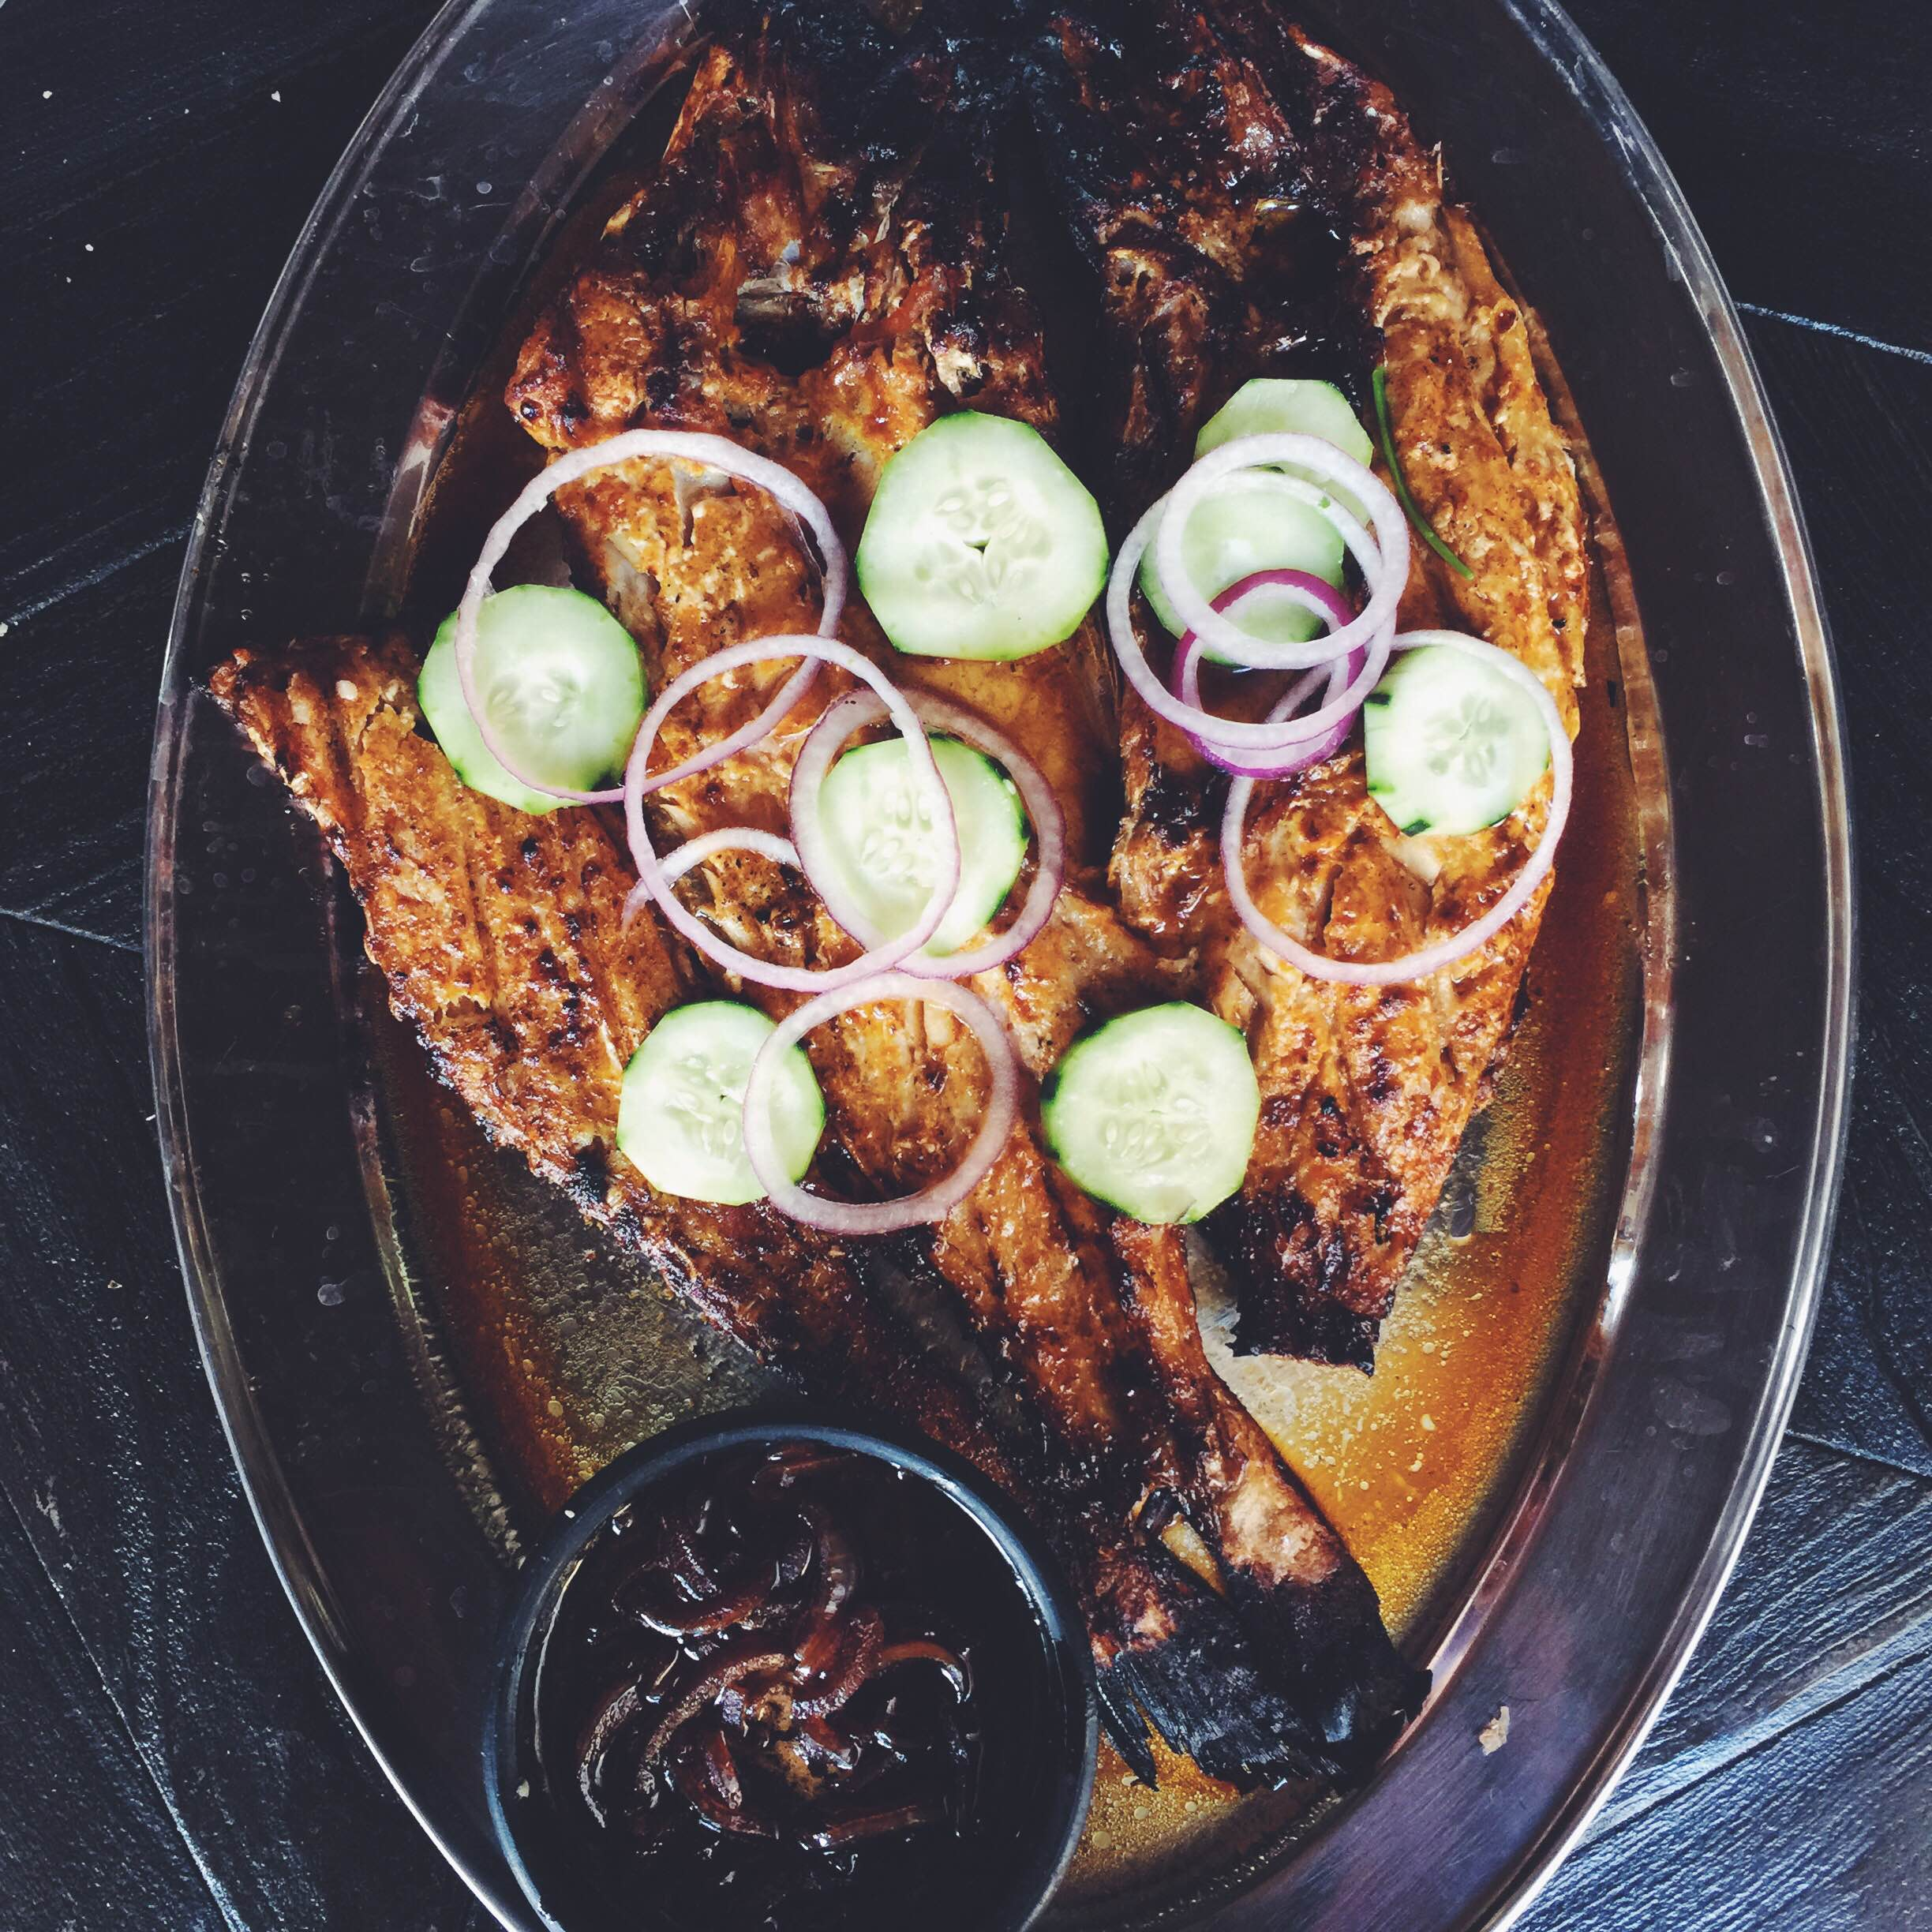 some of the best flame grilled seafood and fish inglewood has to offer